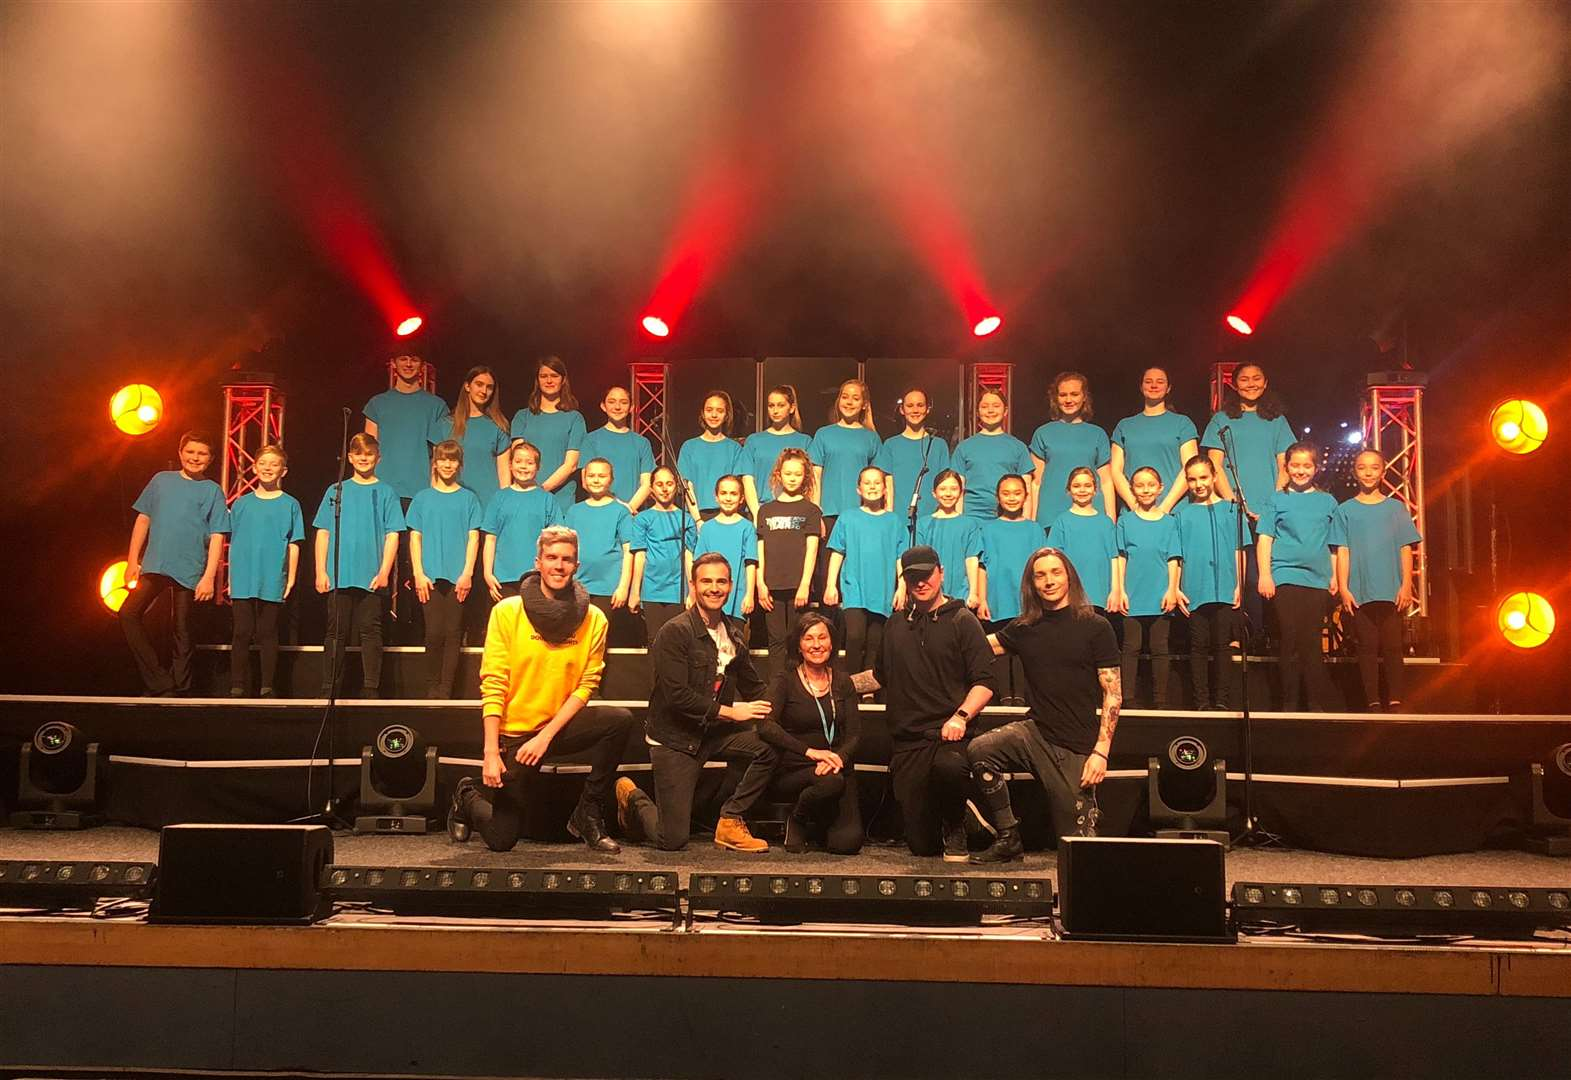 King's Lynn students accompany musical theatre boyband Collabro on stage